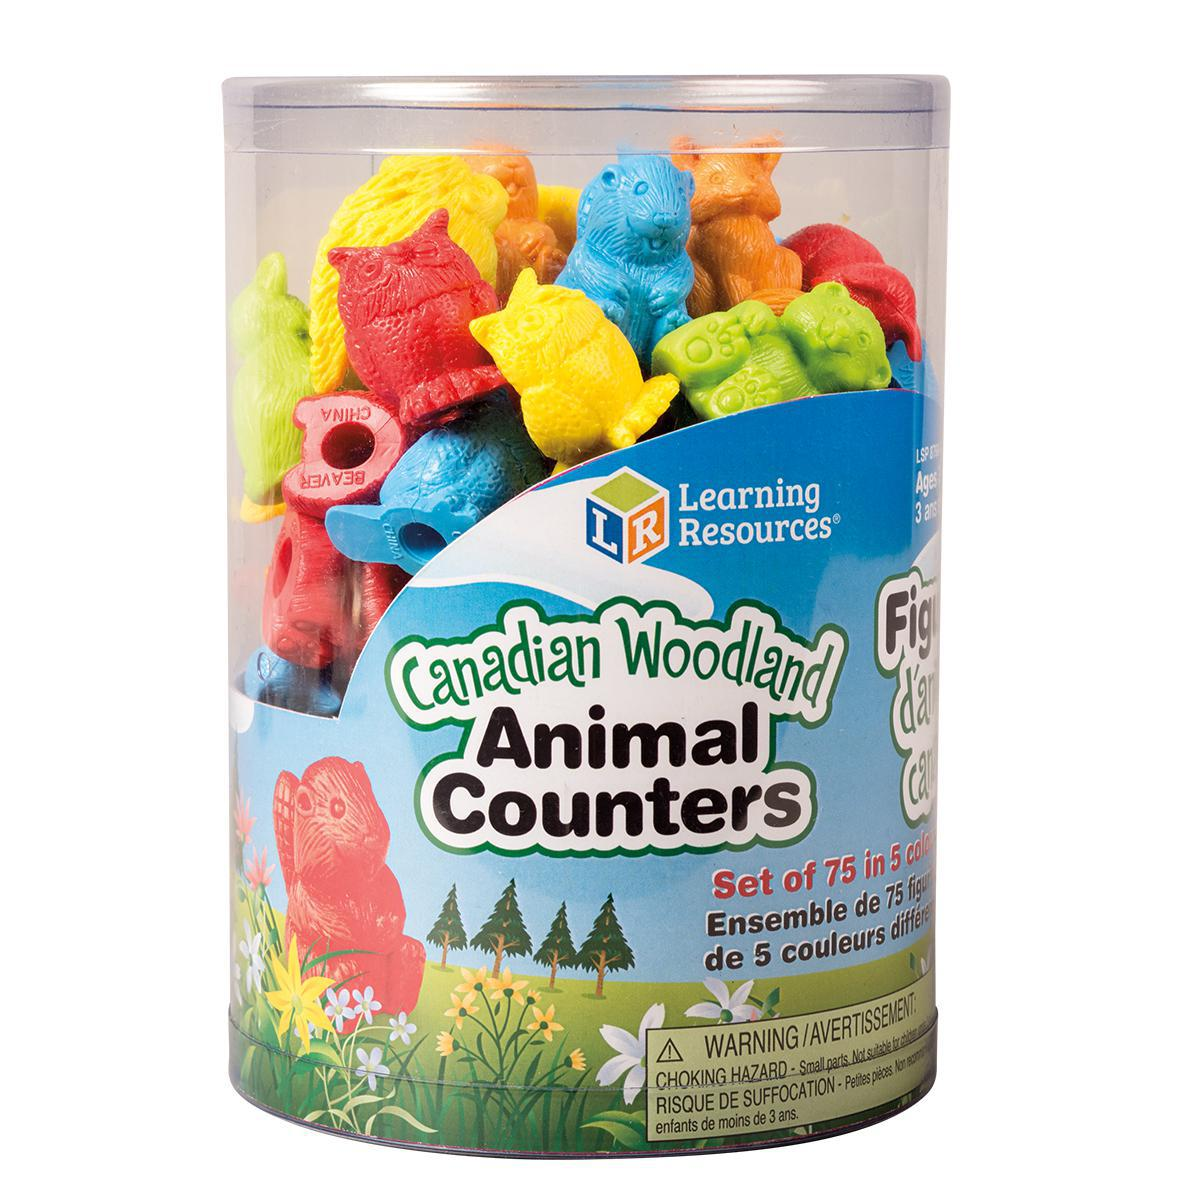 Canadian Woodland Animal Counters